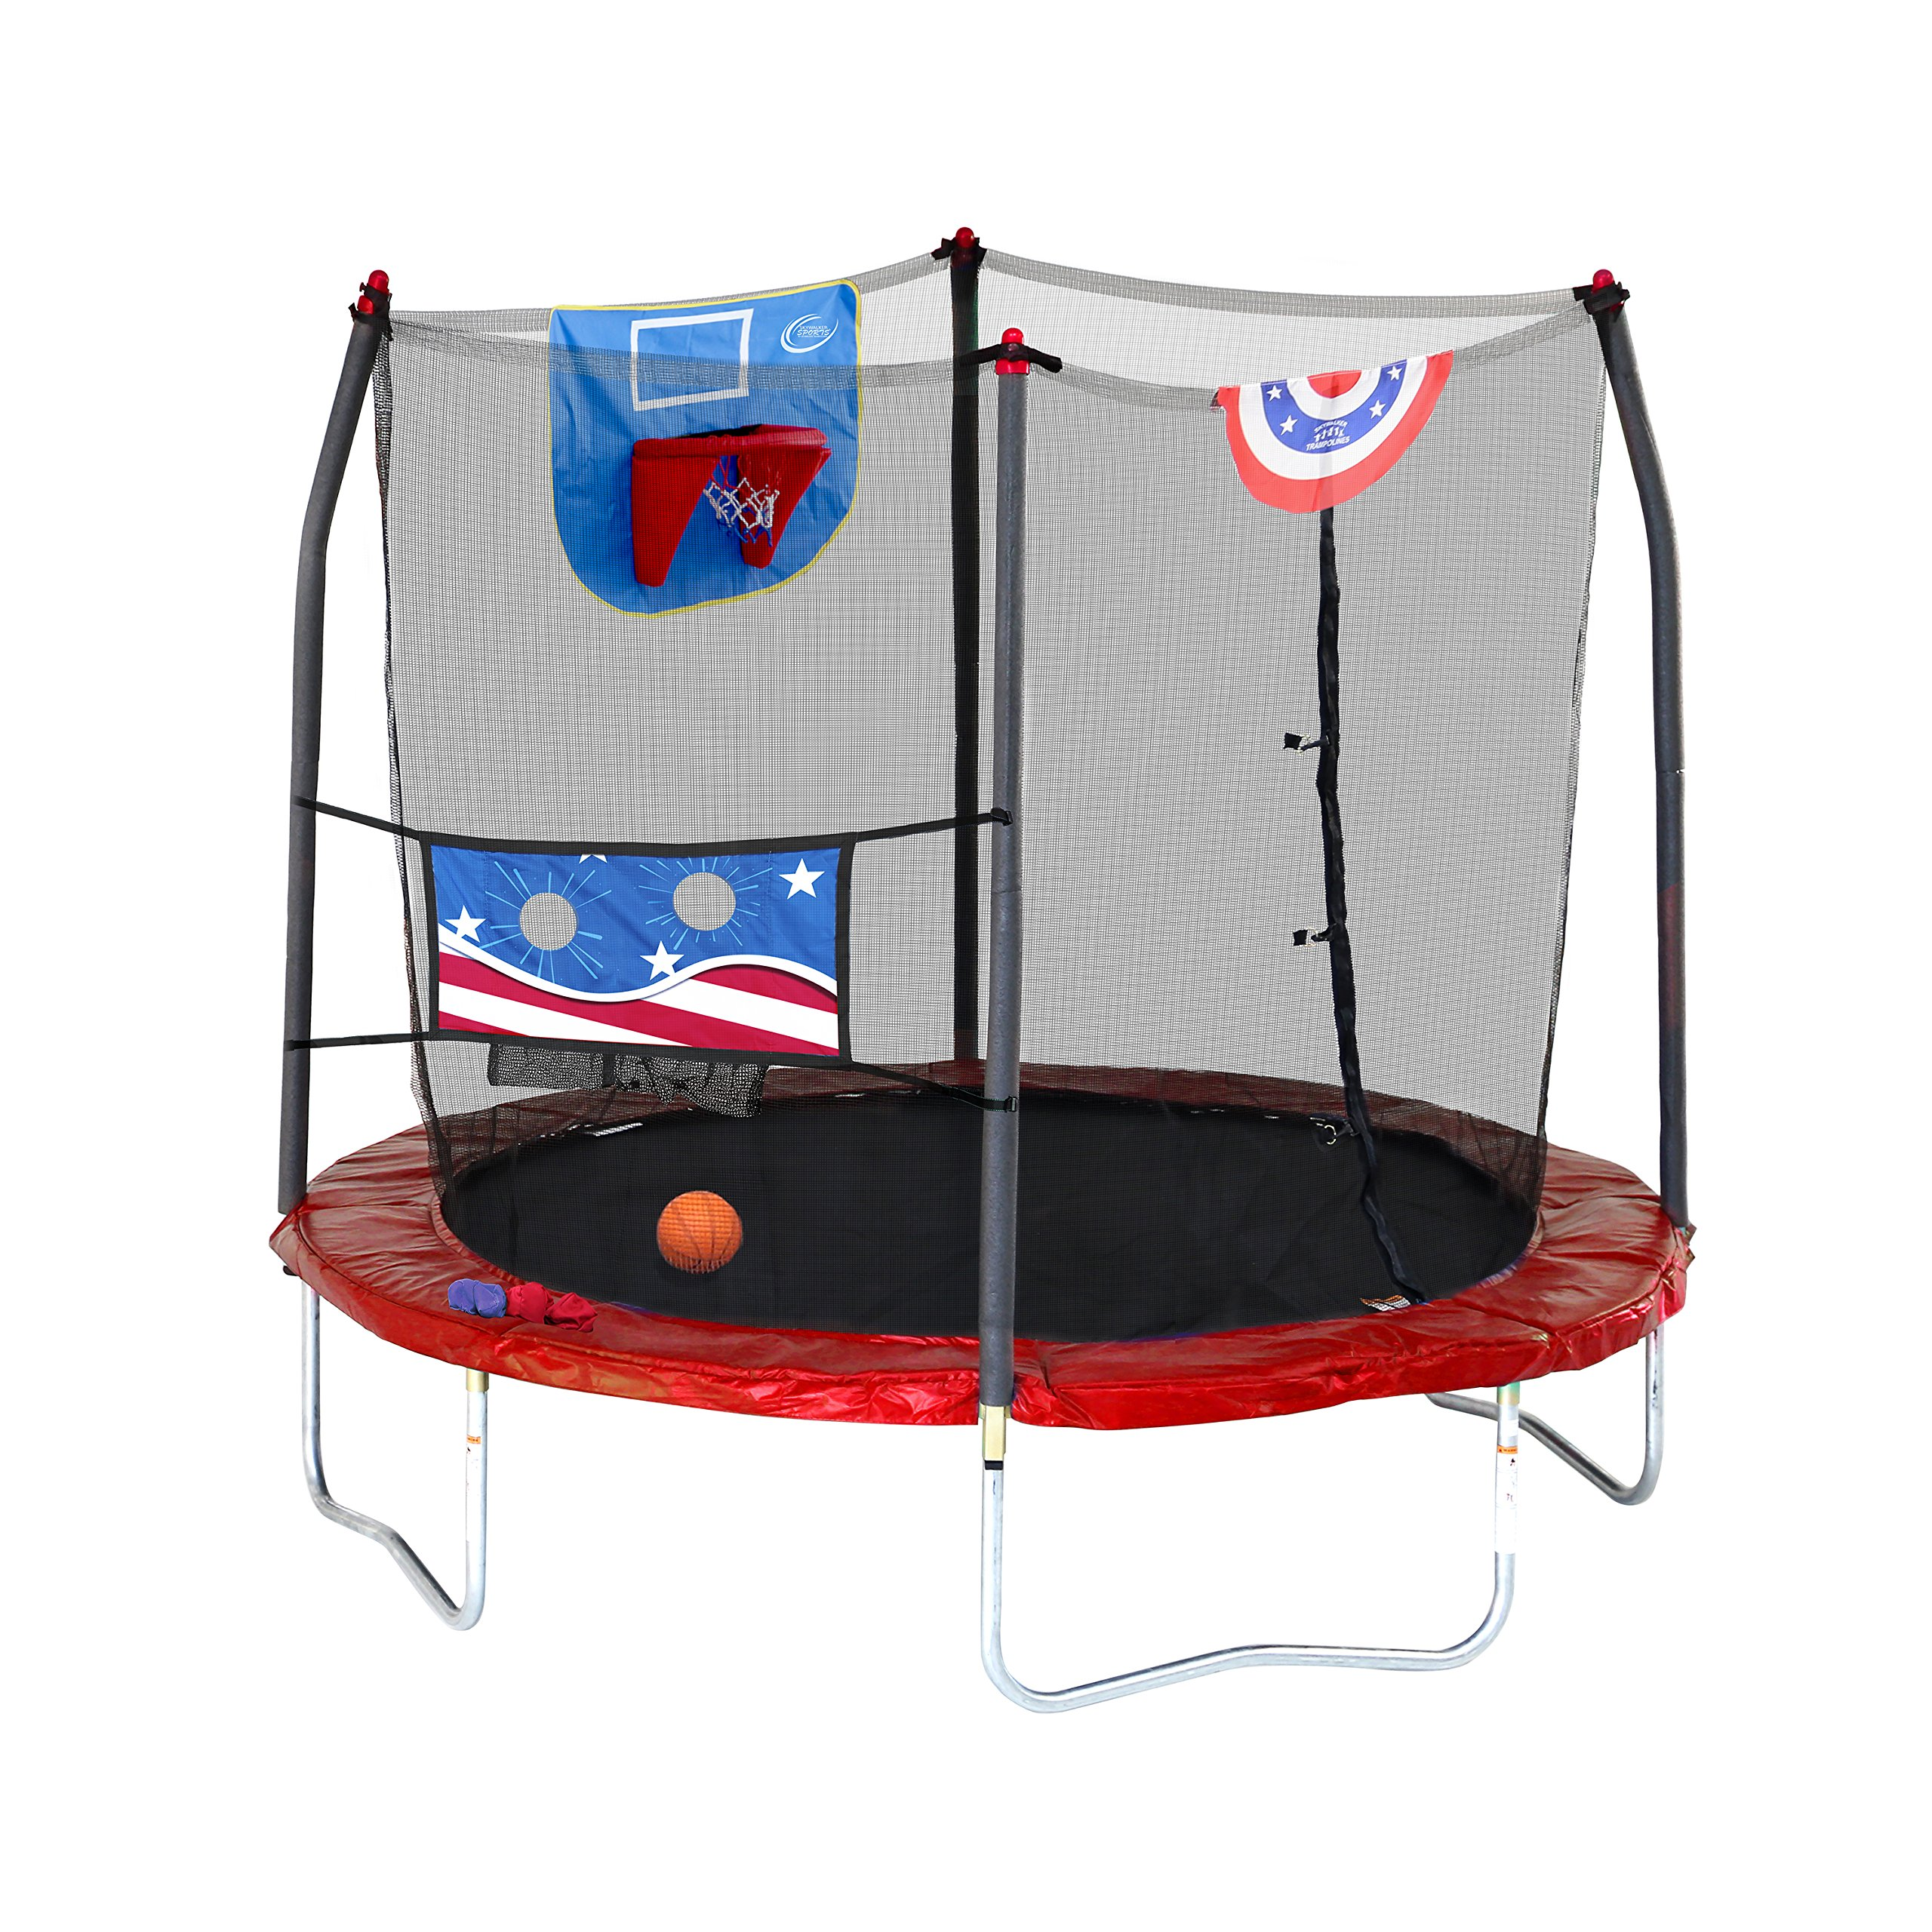 Skywalker Trampolines Stars & Stripes Jump N' Dunk 8' Trampoline with Safety Enclosure Basketball Hoop